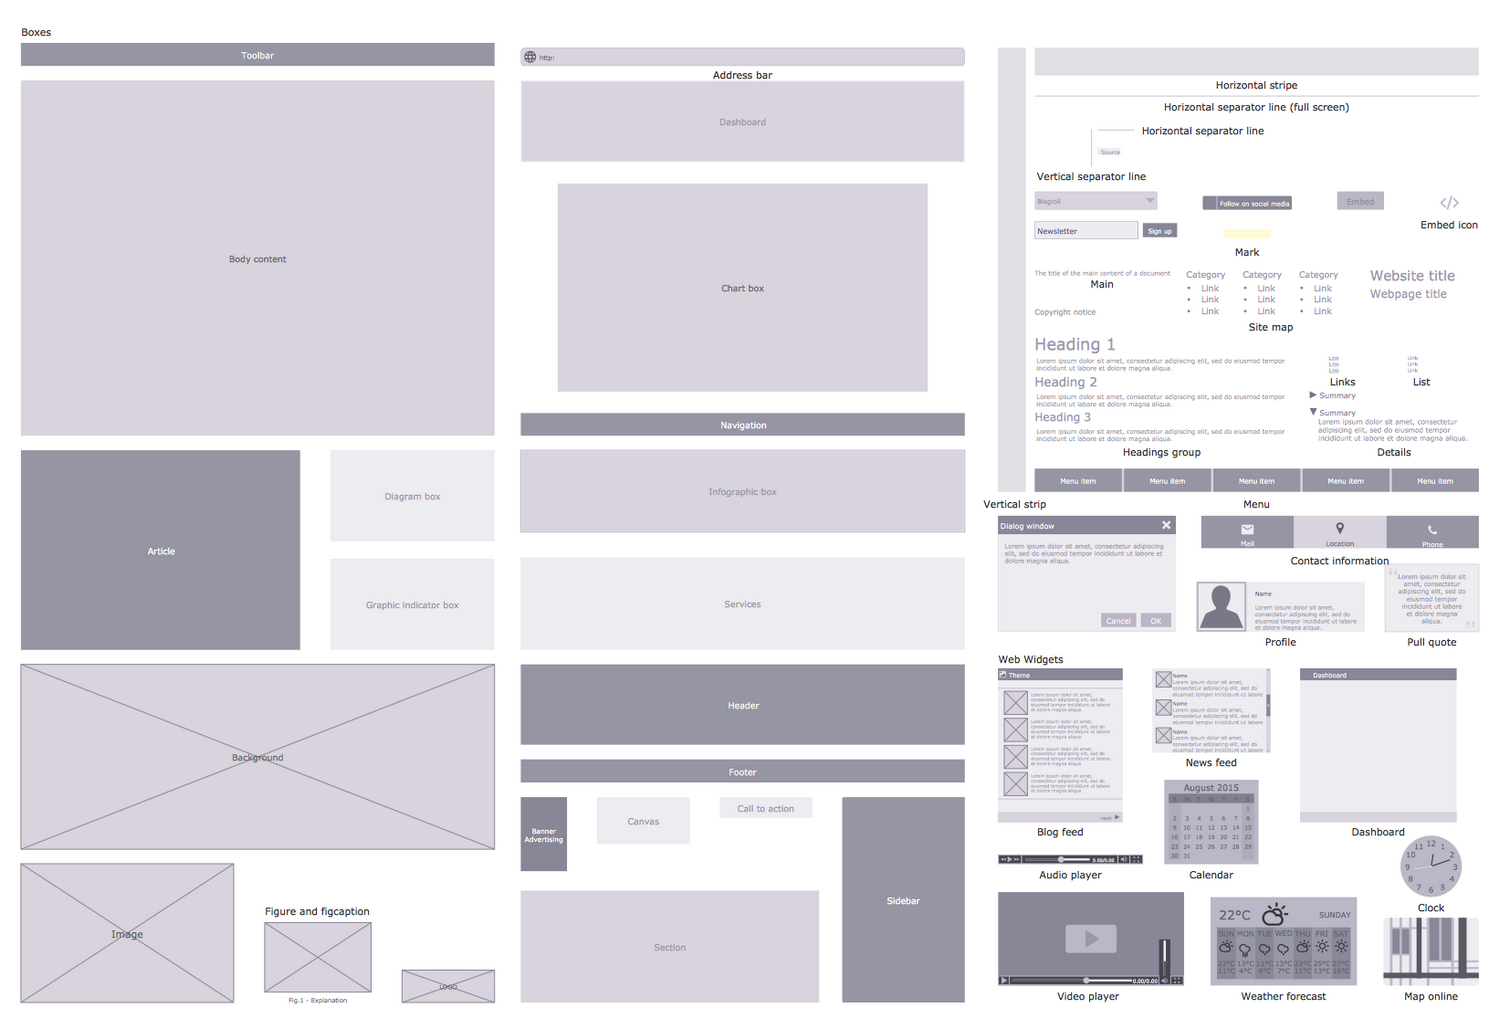 cs odessa announces website wireframe solution for conceptdraw pro rh conceptdraw com Sample Wireframe Diagram Website Wireframe